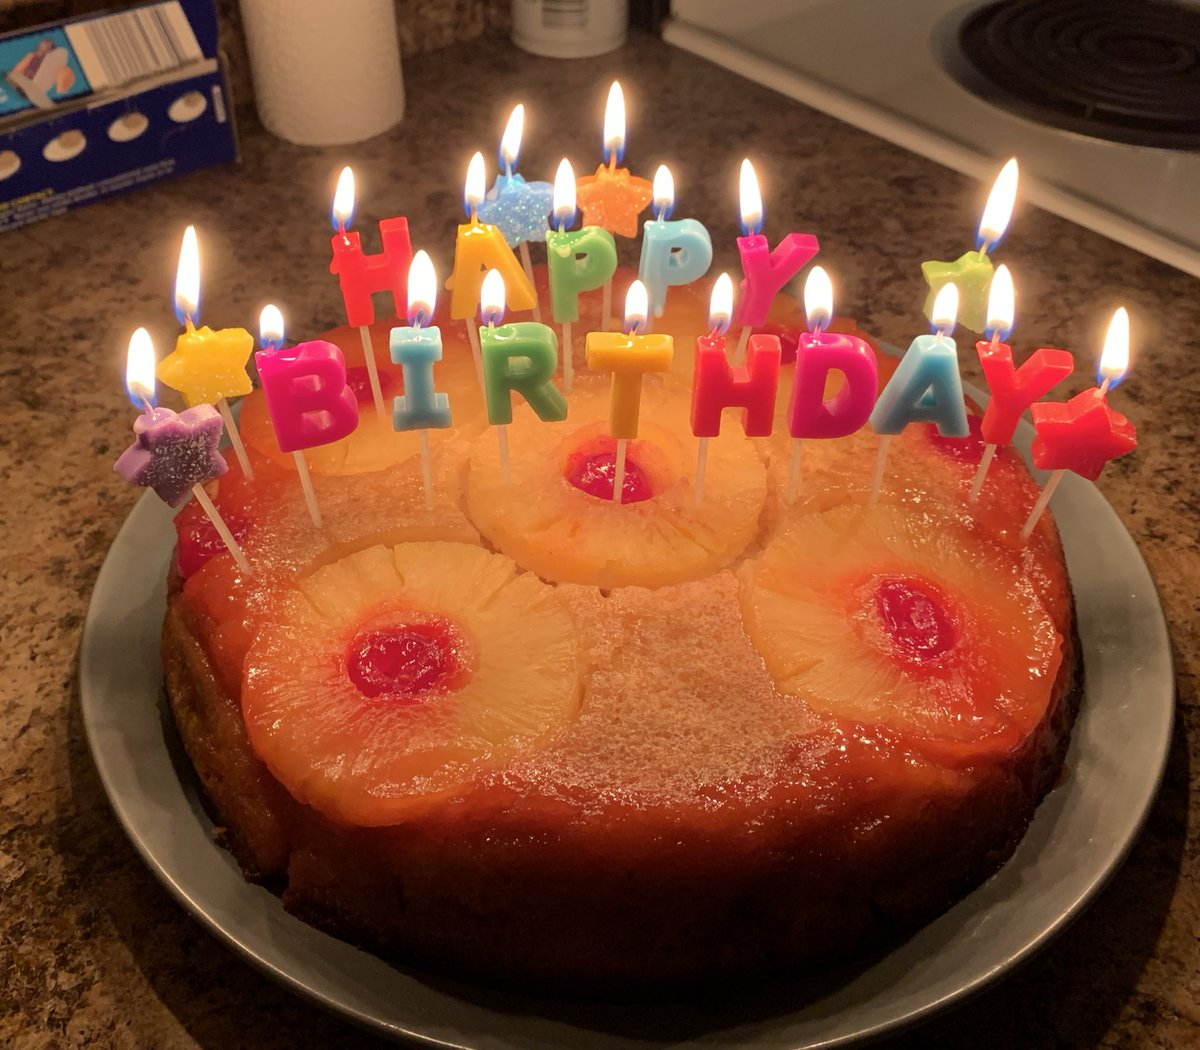 Groovy Britt Sabo On Twitter My Birthday Cake This Year Upon Request Funny Birthday Cards Online Bapapcheapnameinfo